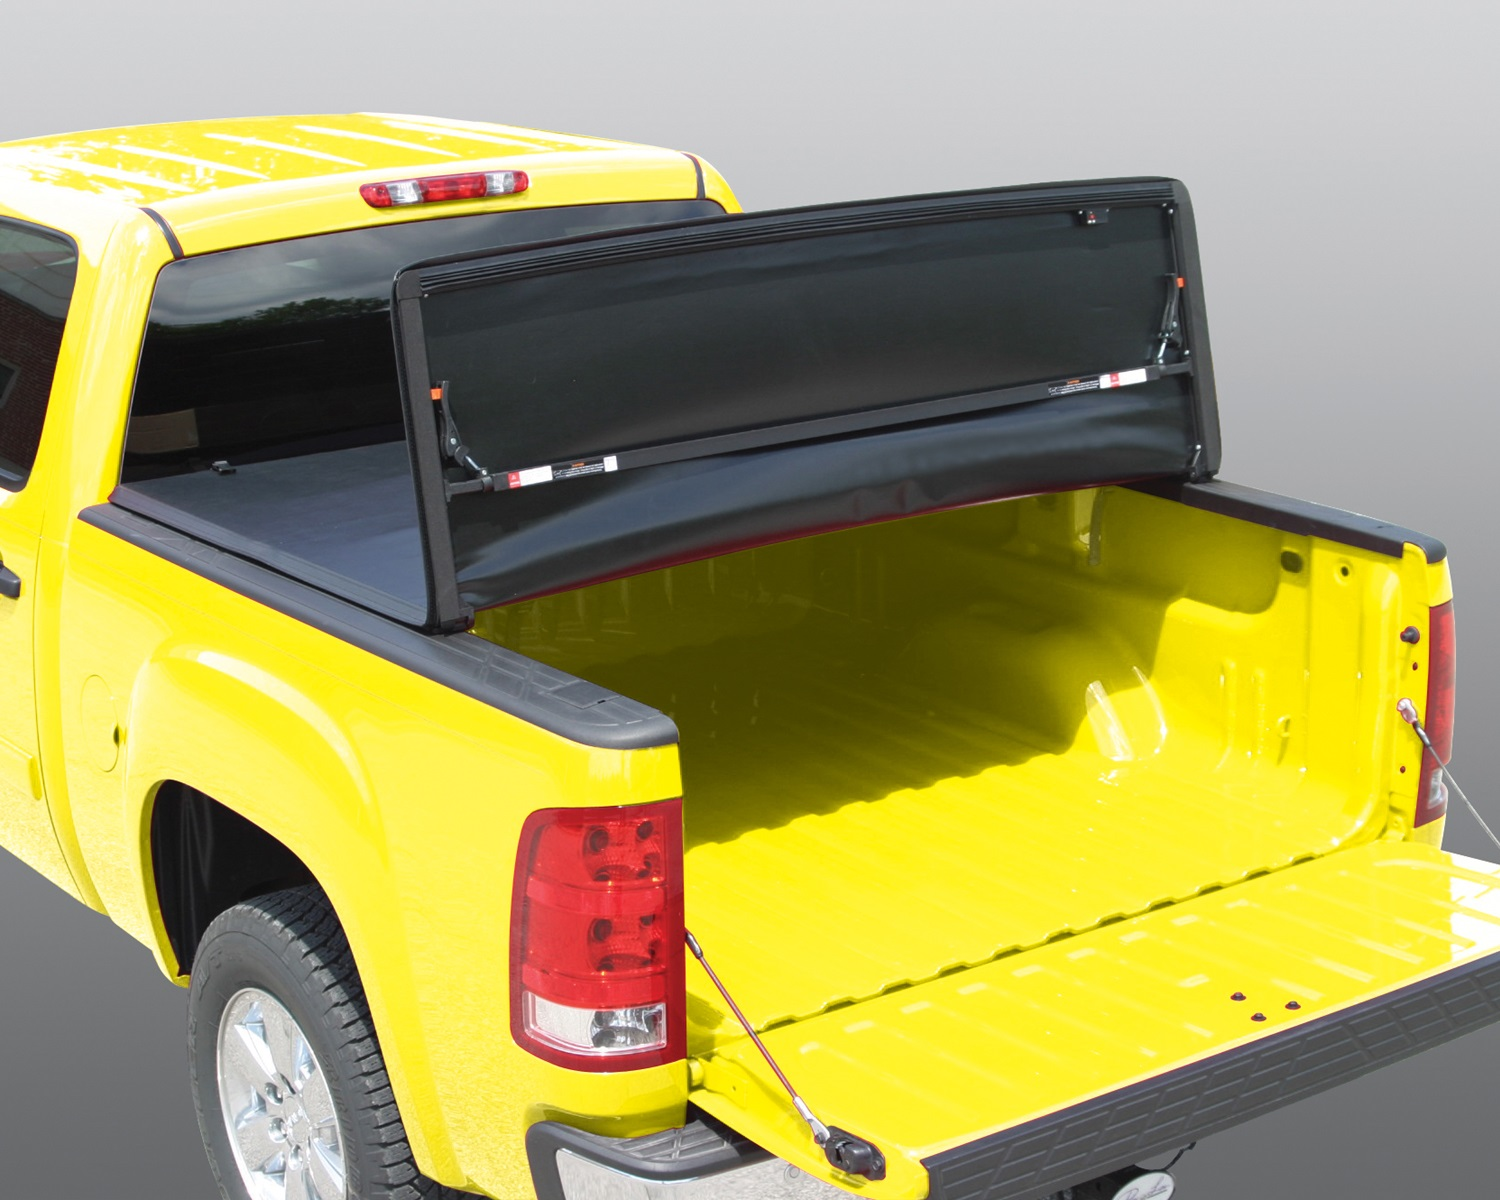 Rugged Liner E3-TUN6500 E-Series Vinyl Folding Rugged Cover Fits 04-06 Tundra